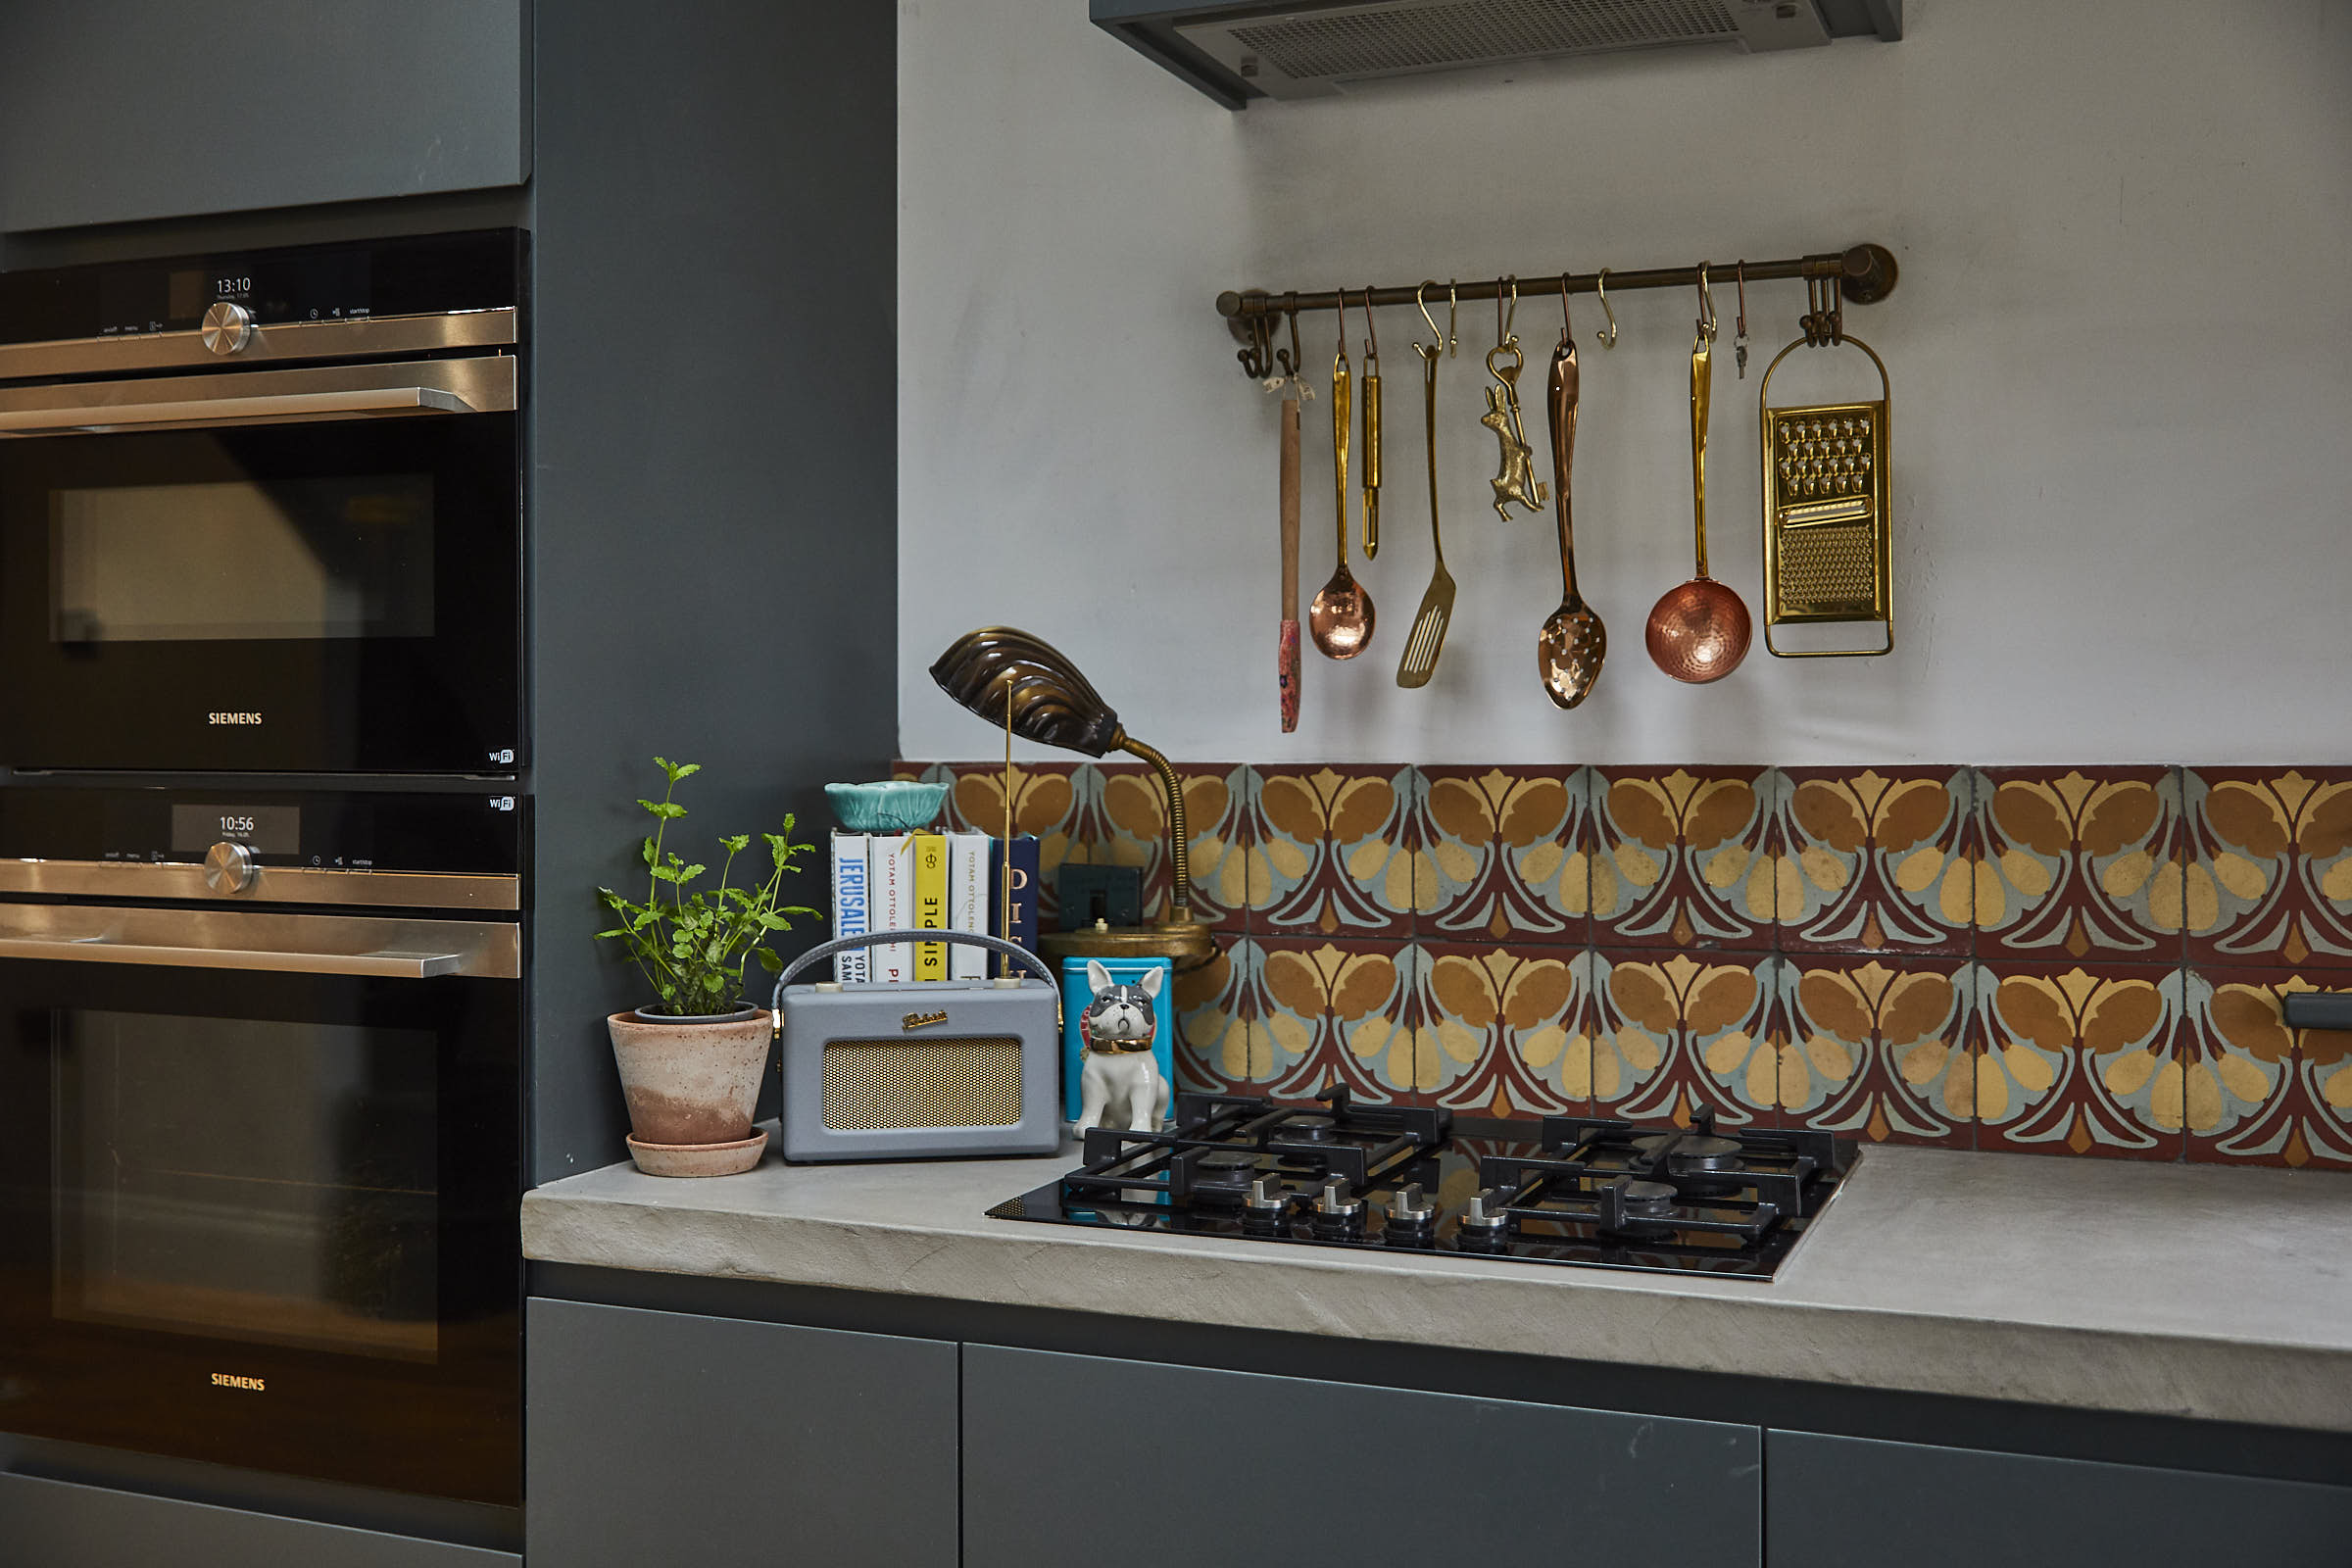 Copper utensils hand over gas hob with colourful shell tiles